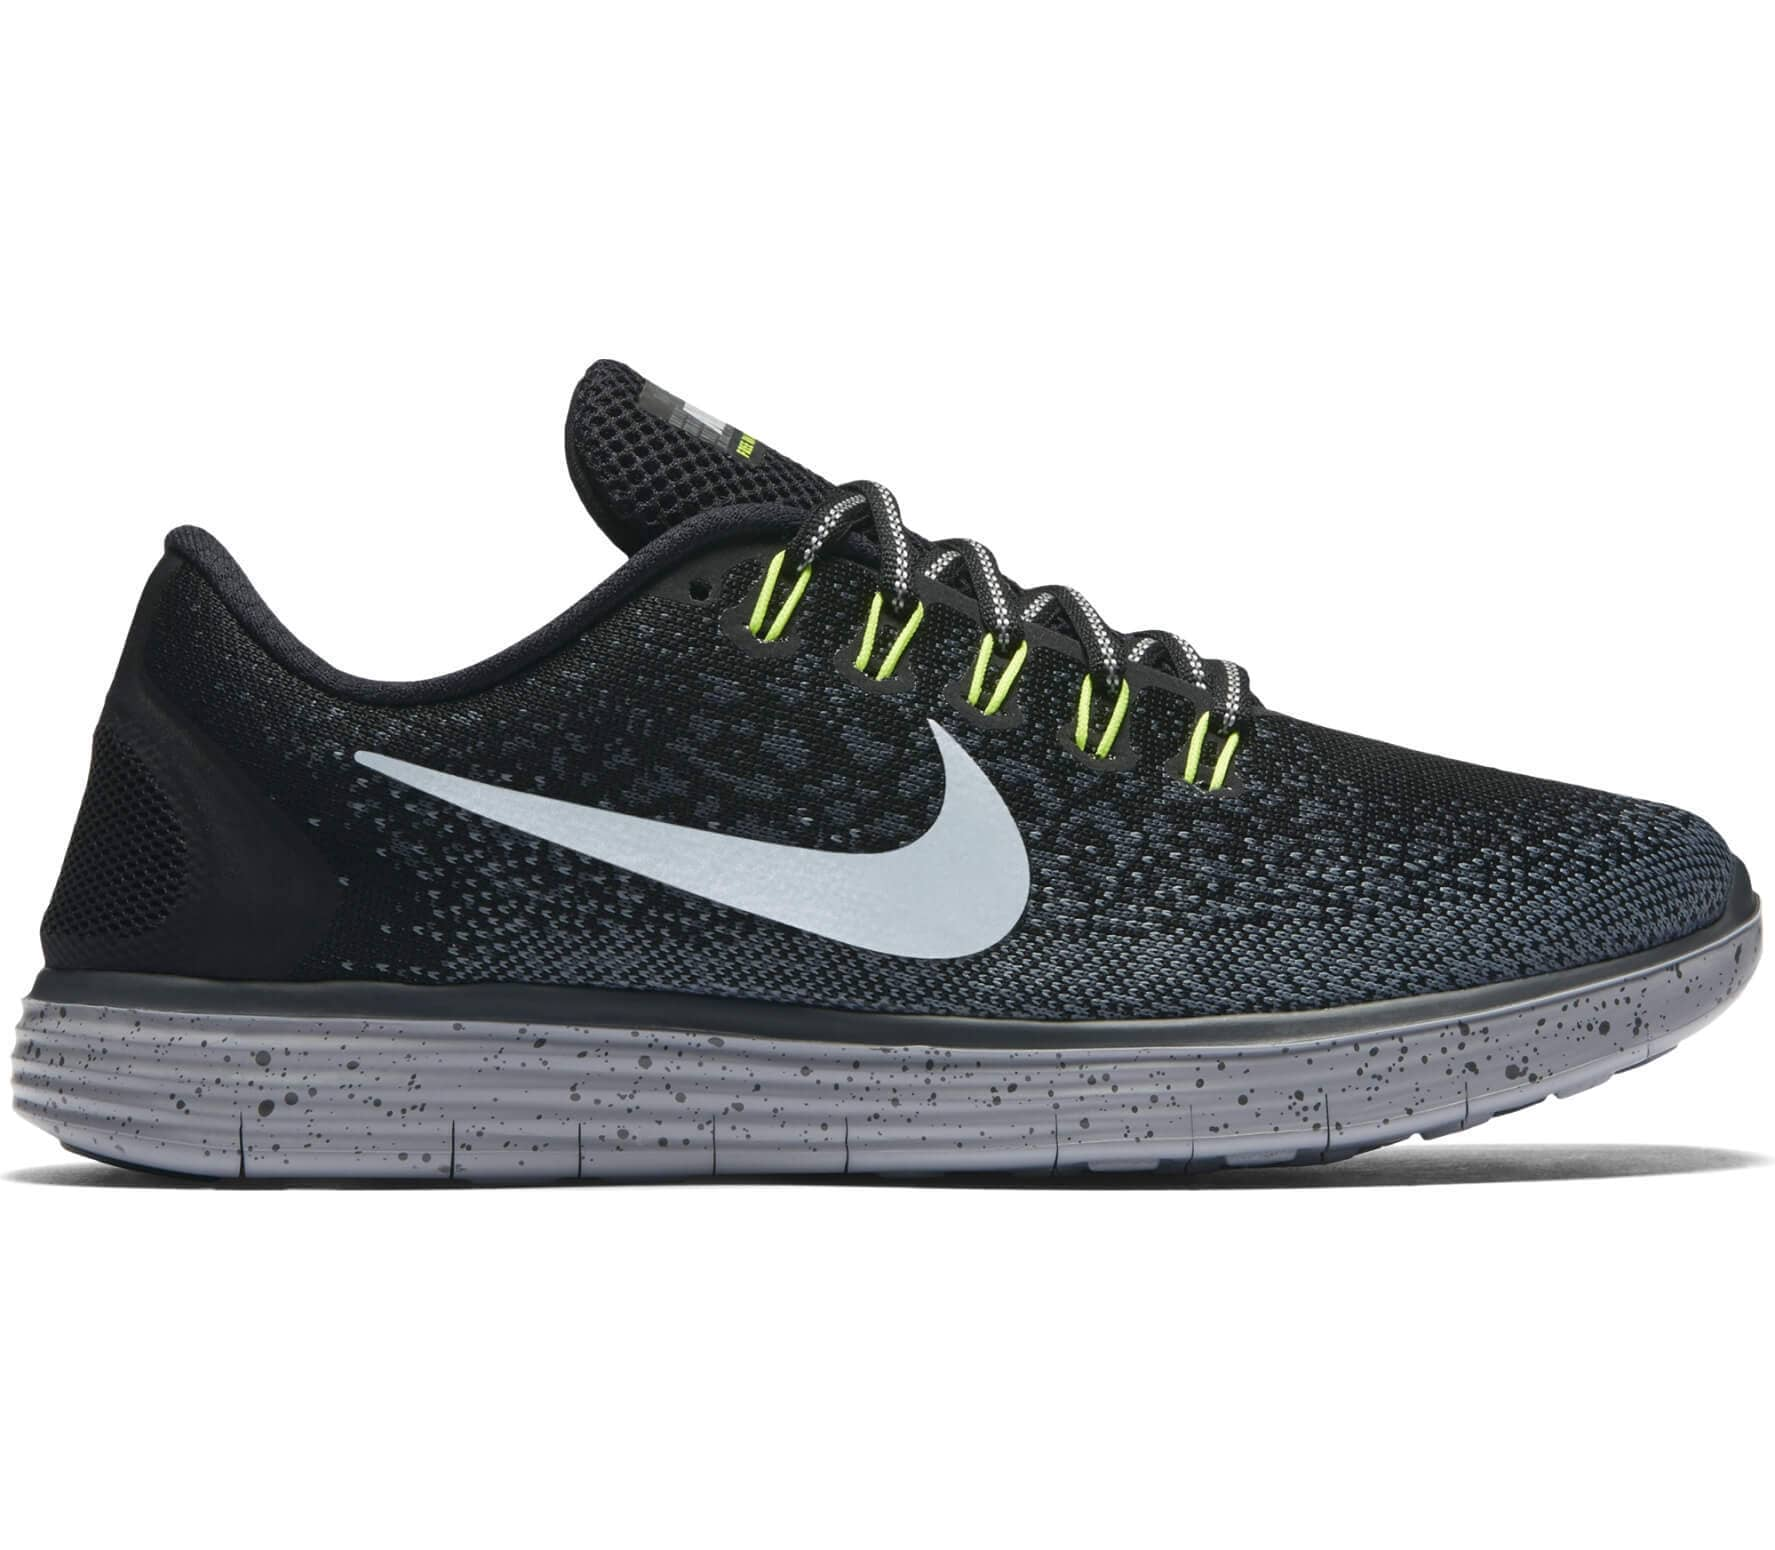 4795ec59709db Nike - Free RN Distance Shield women s running shoes (black silver ...